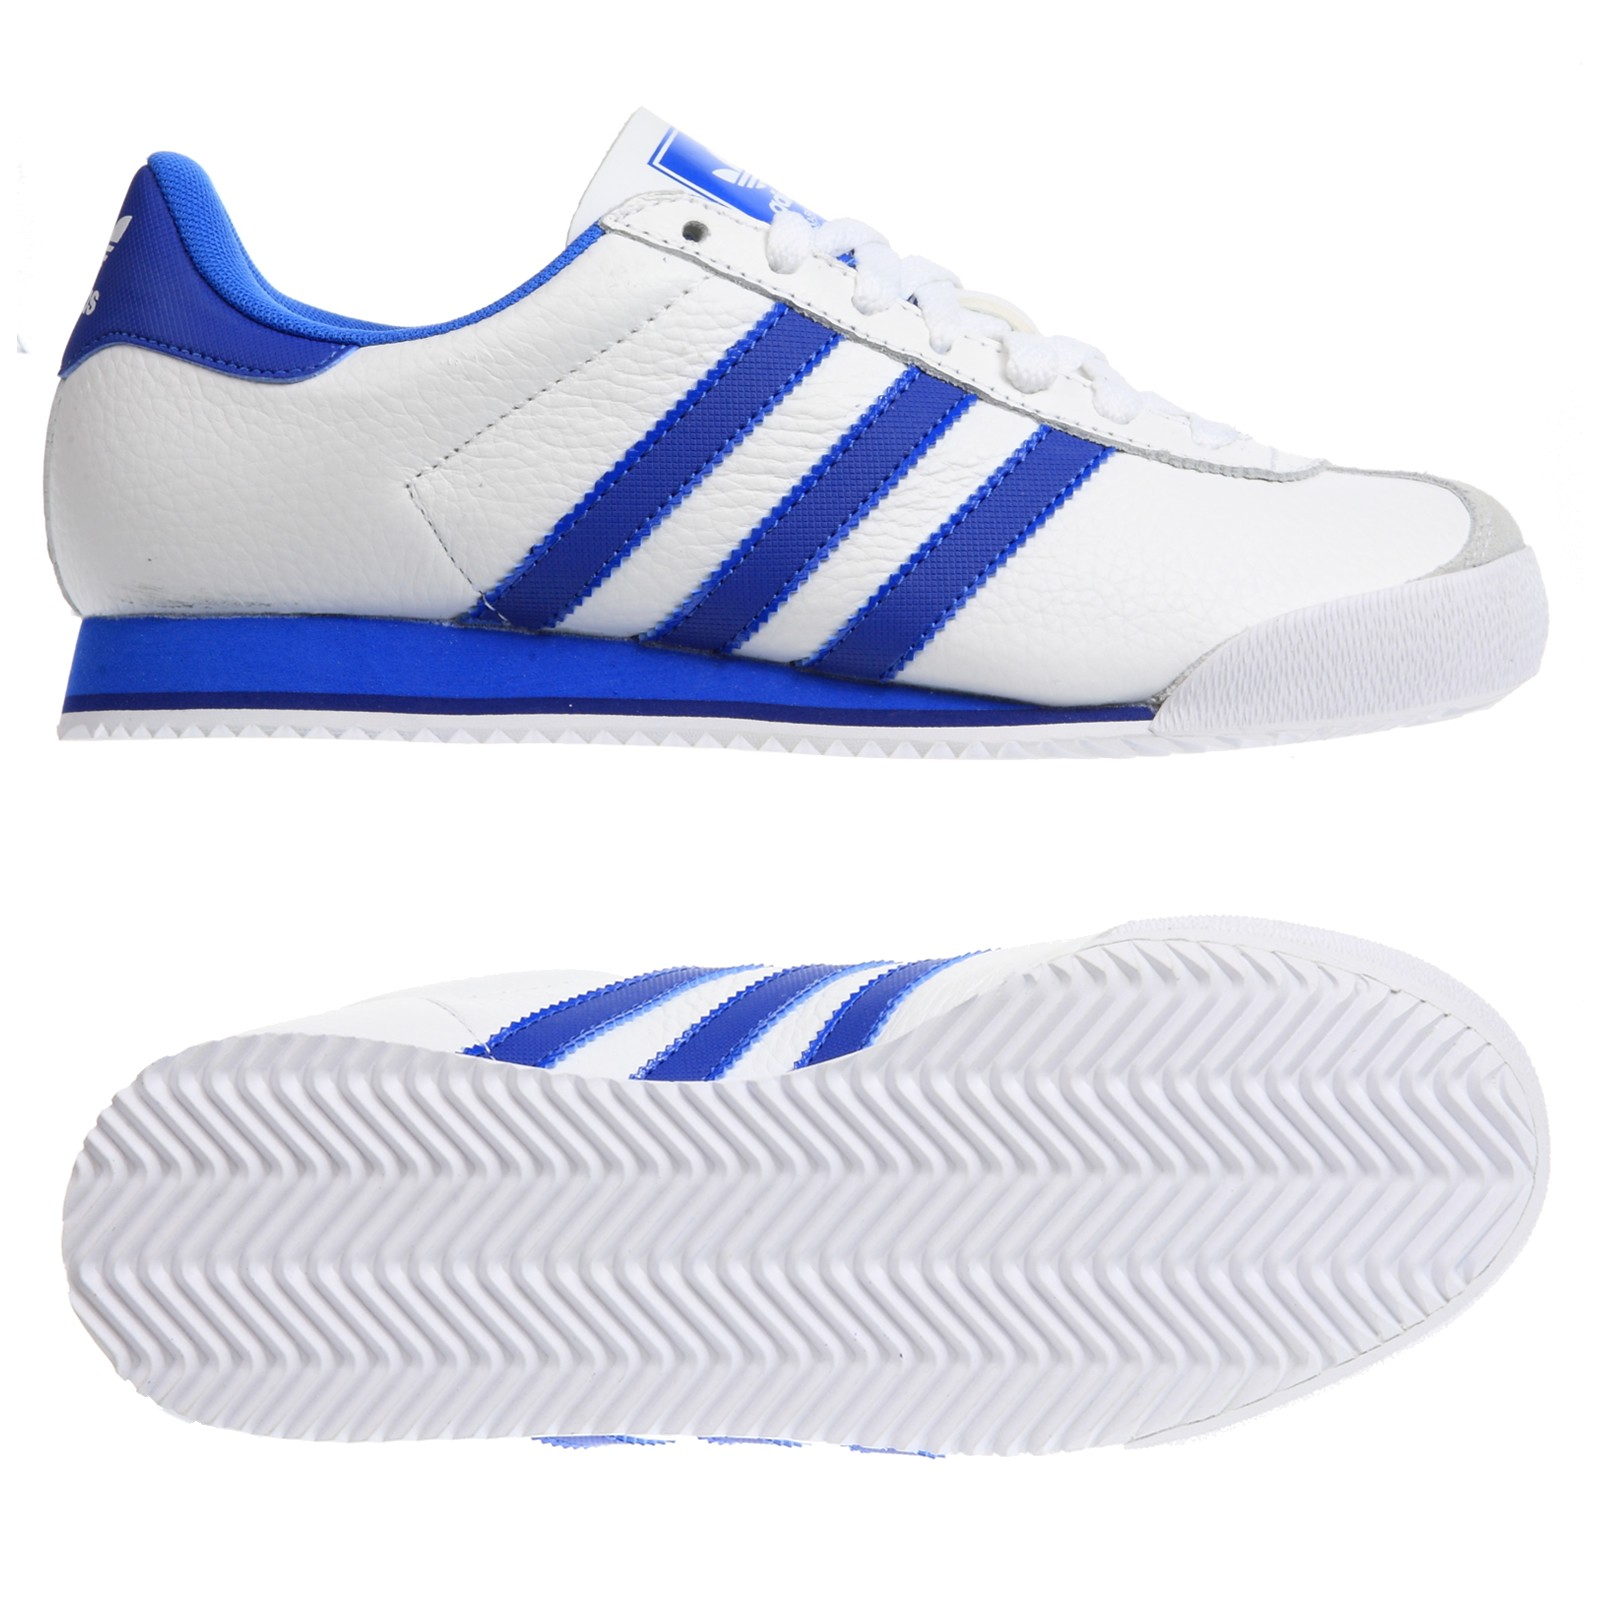 New-Mens-Adidas-Kick-Originals-White-Leather-Sports-Classic-Trainers-Size-7-12